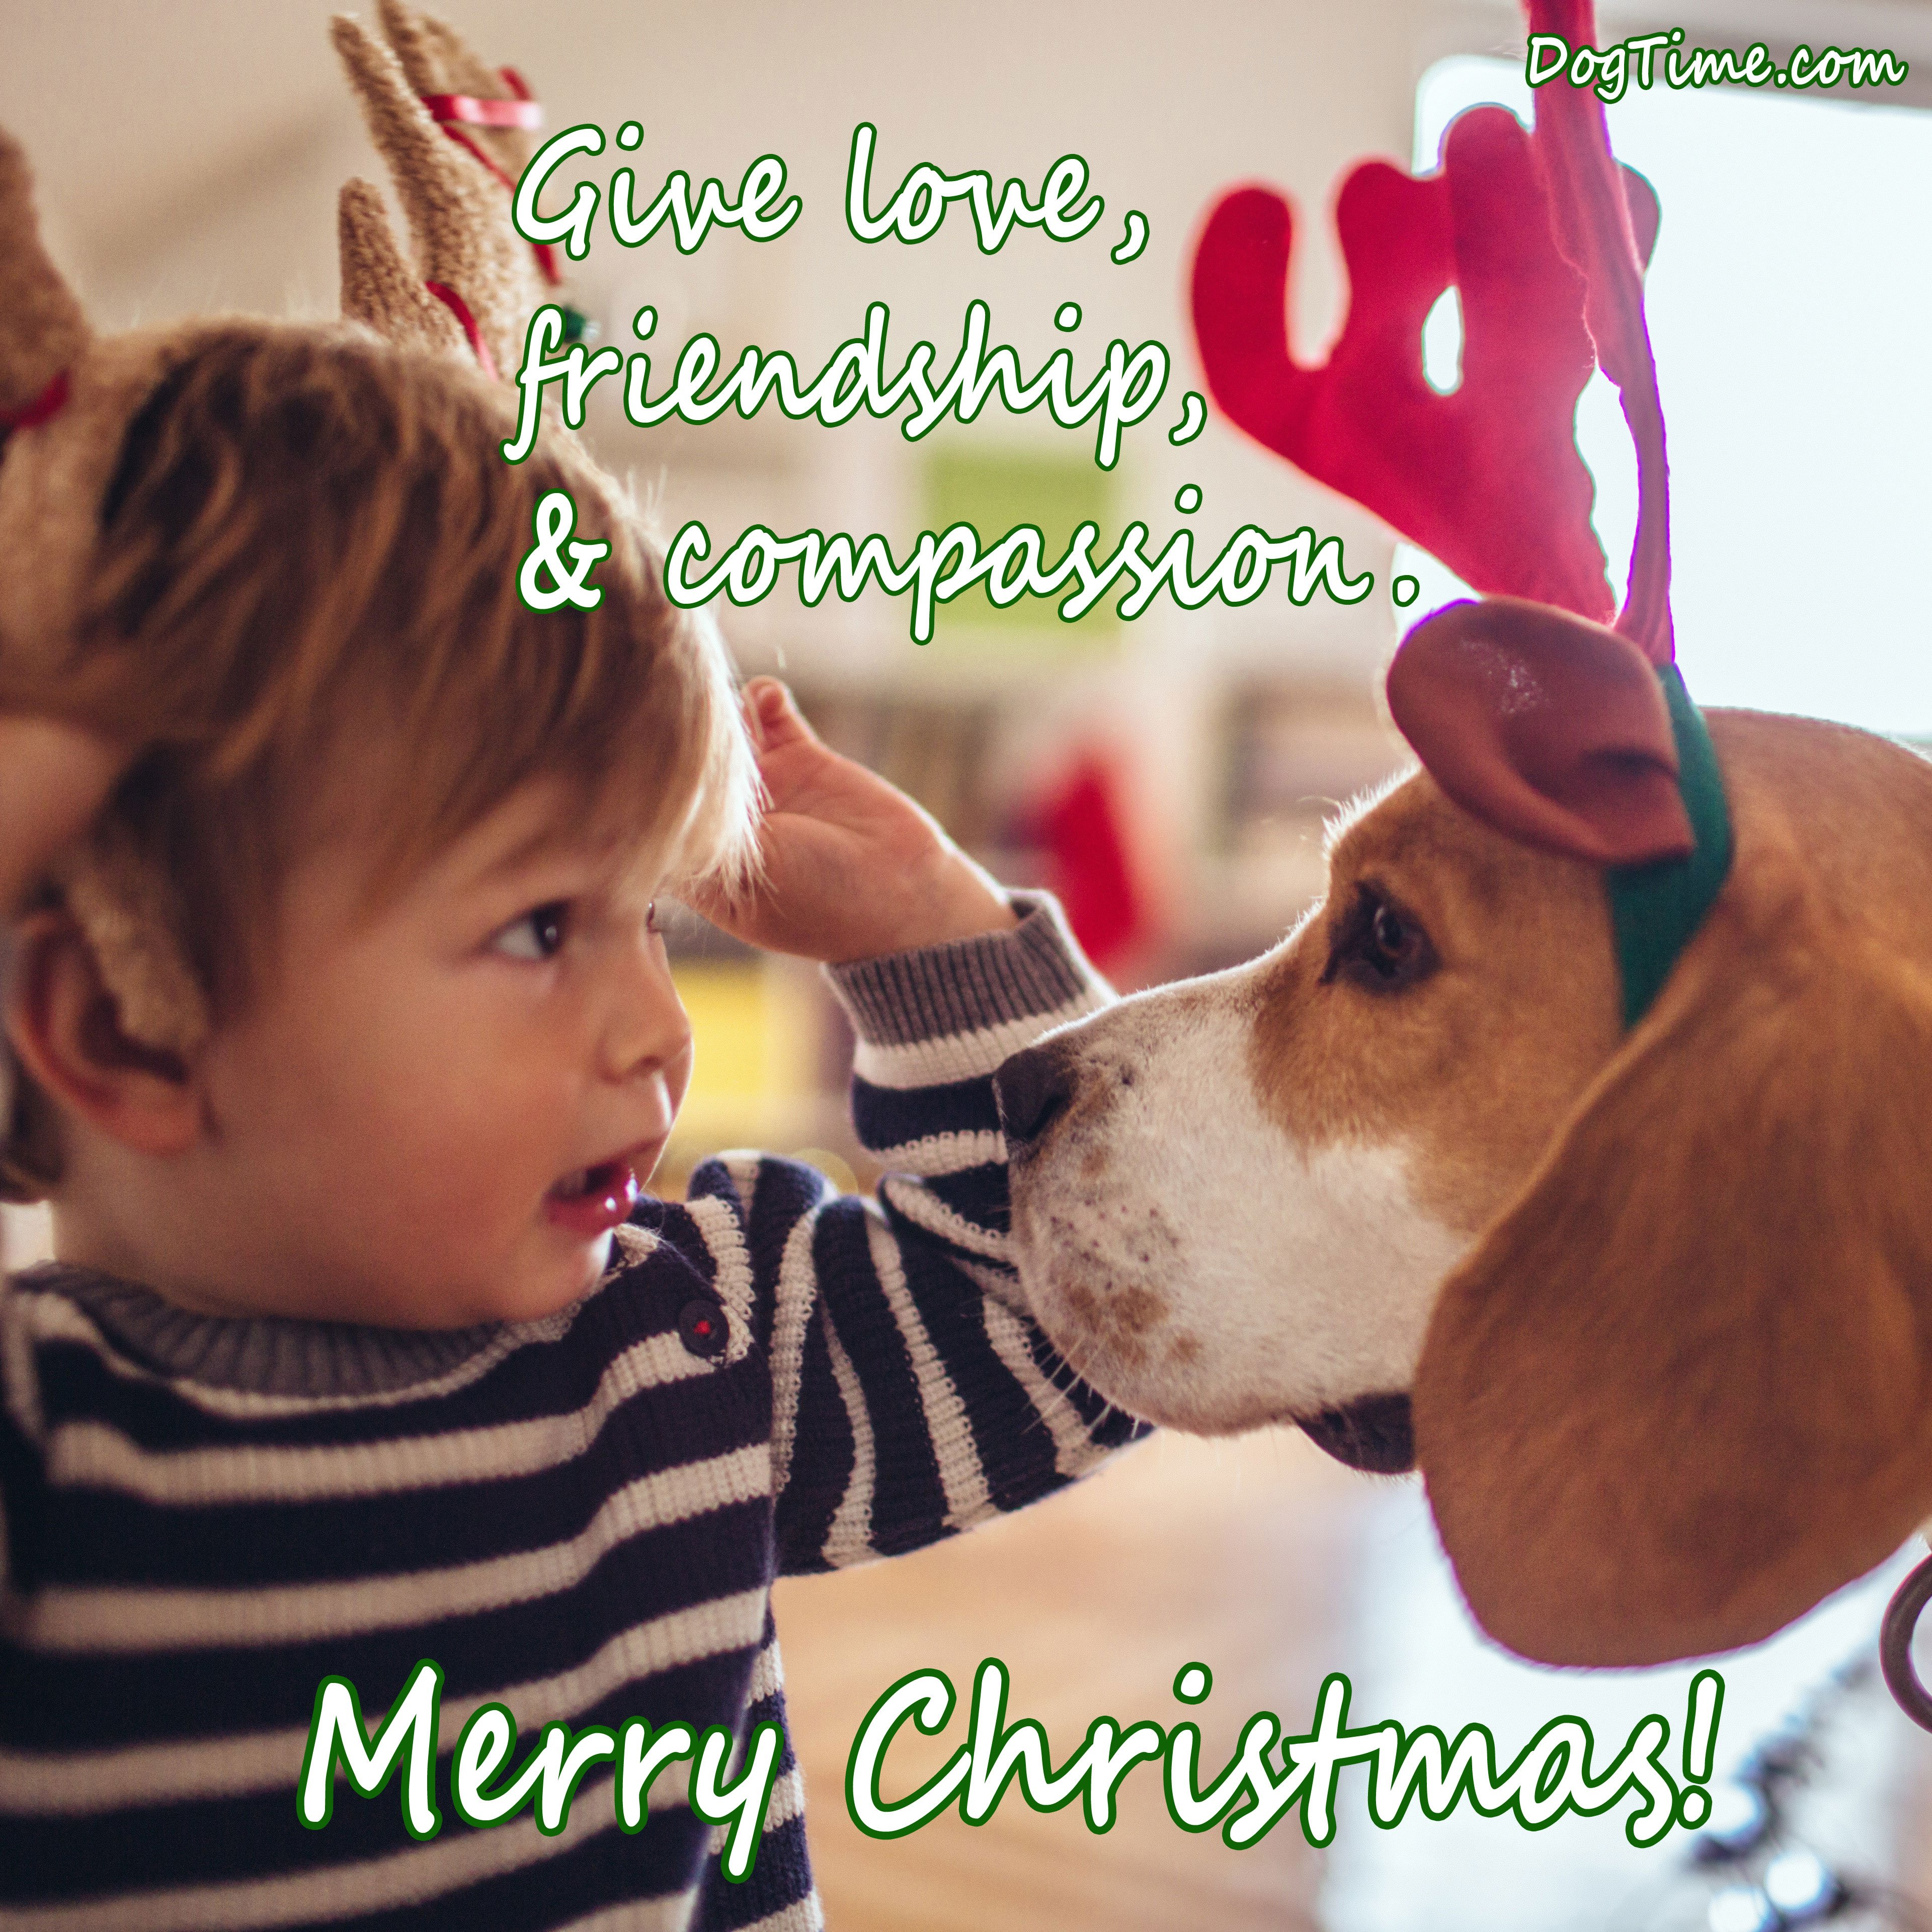 30 Dog Christmas Cards To Share With Your Friends And Family - Dogtime